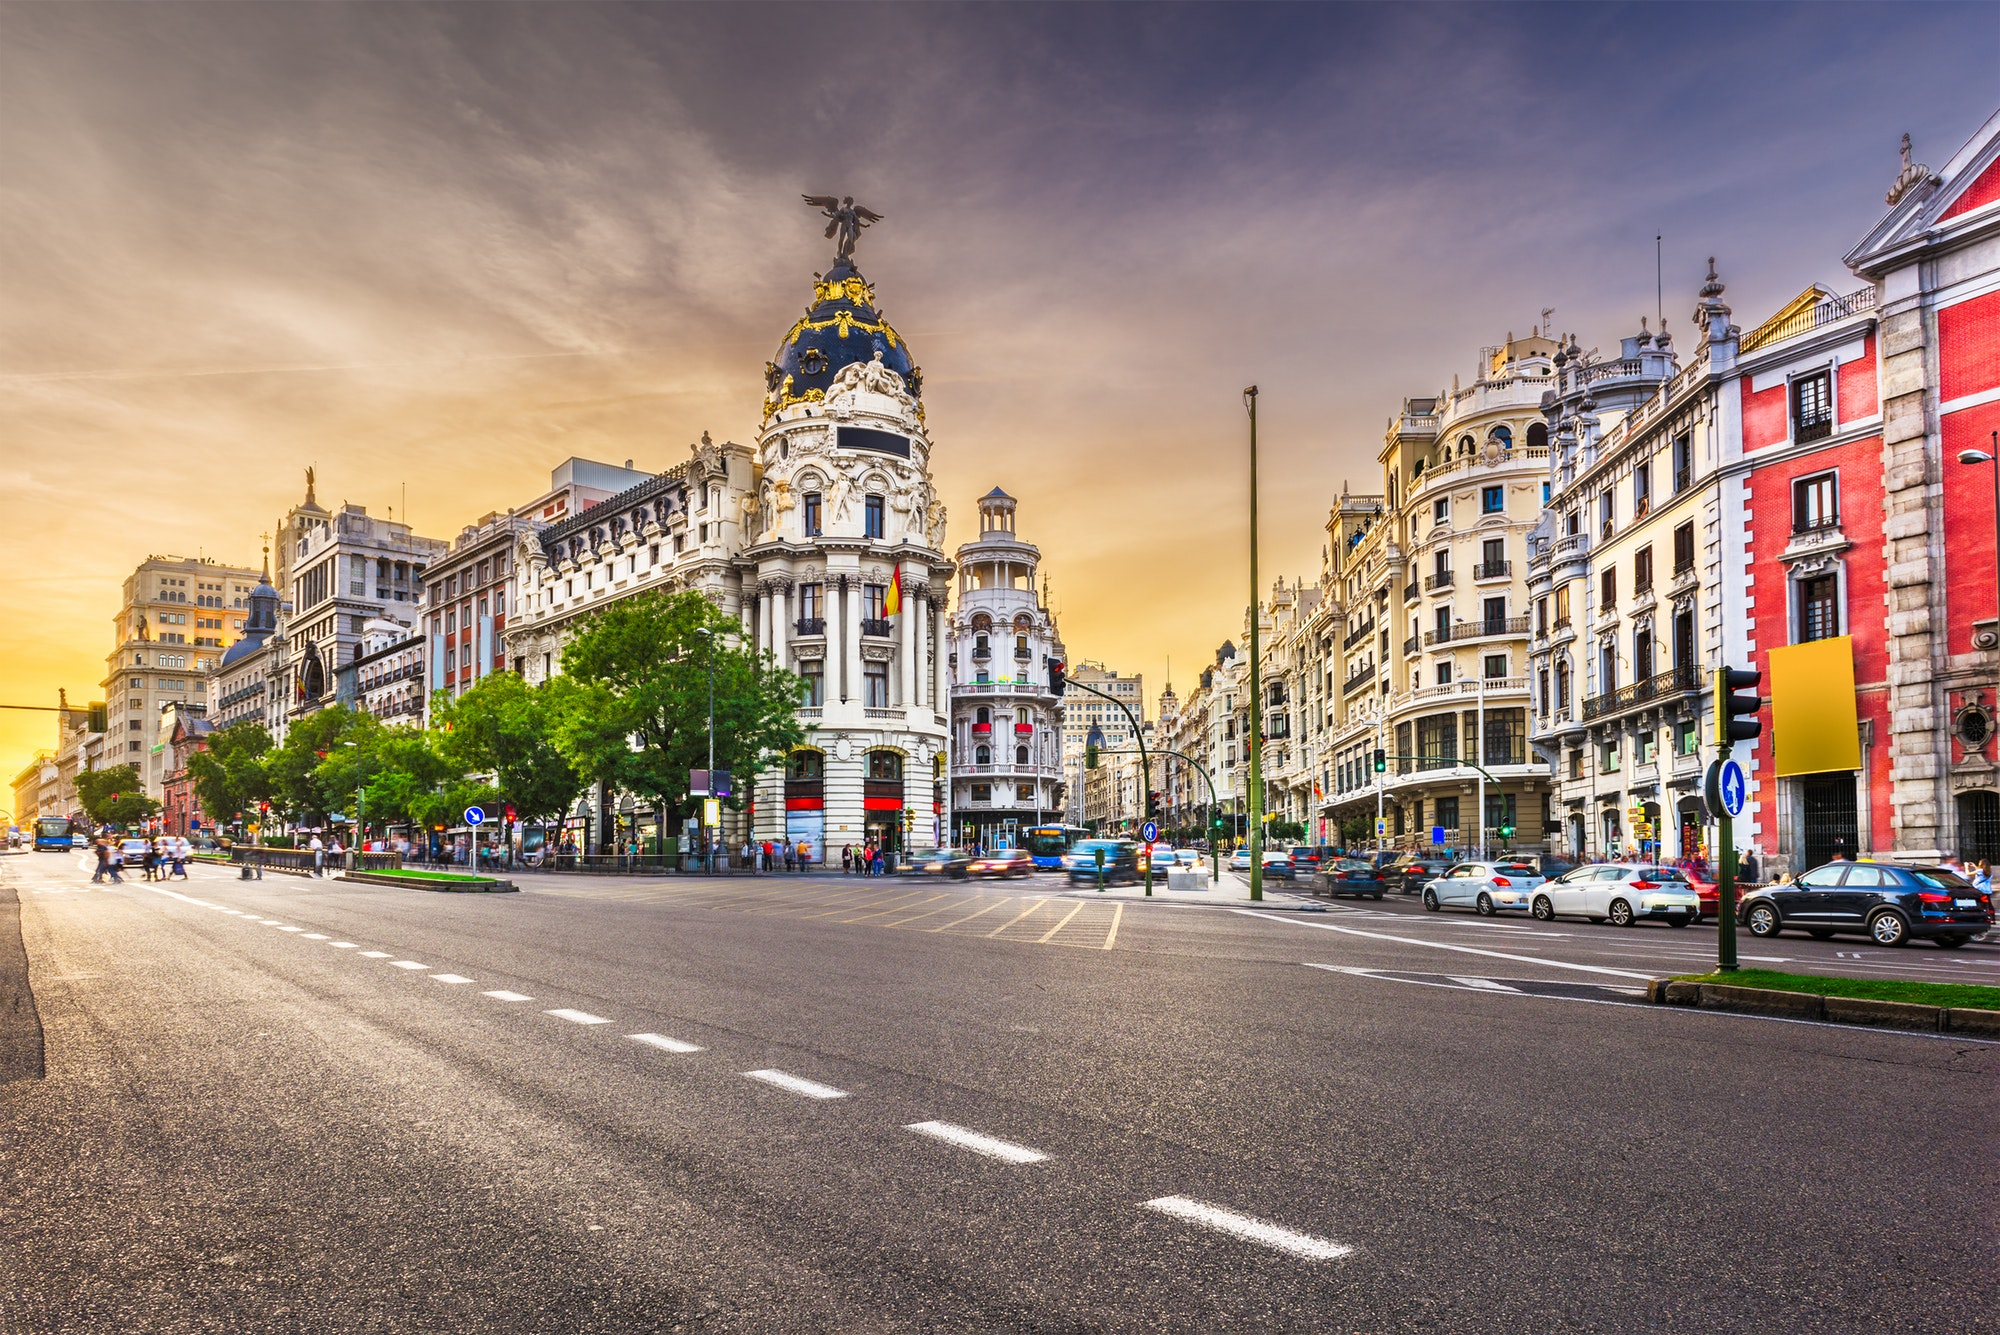 Studying and living in Spain